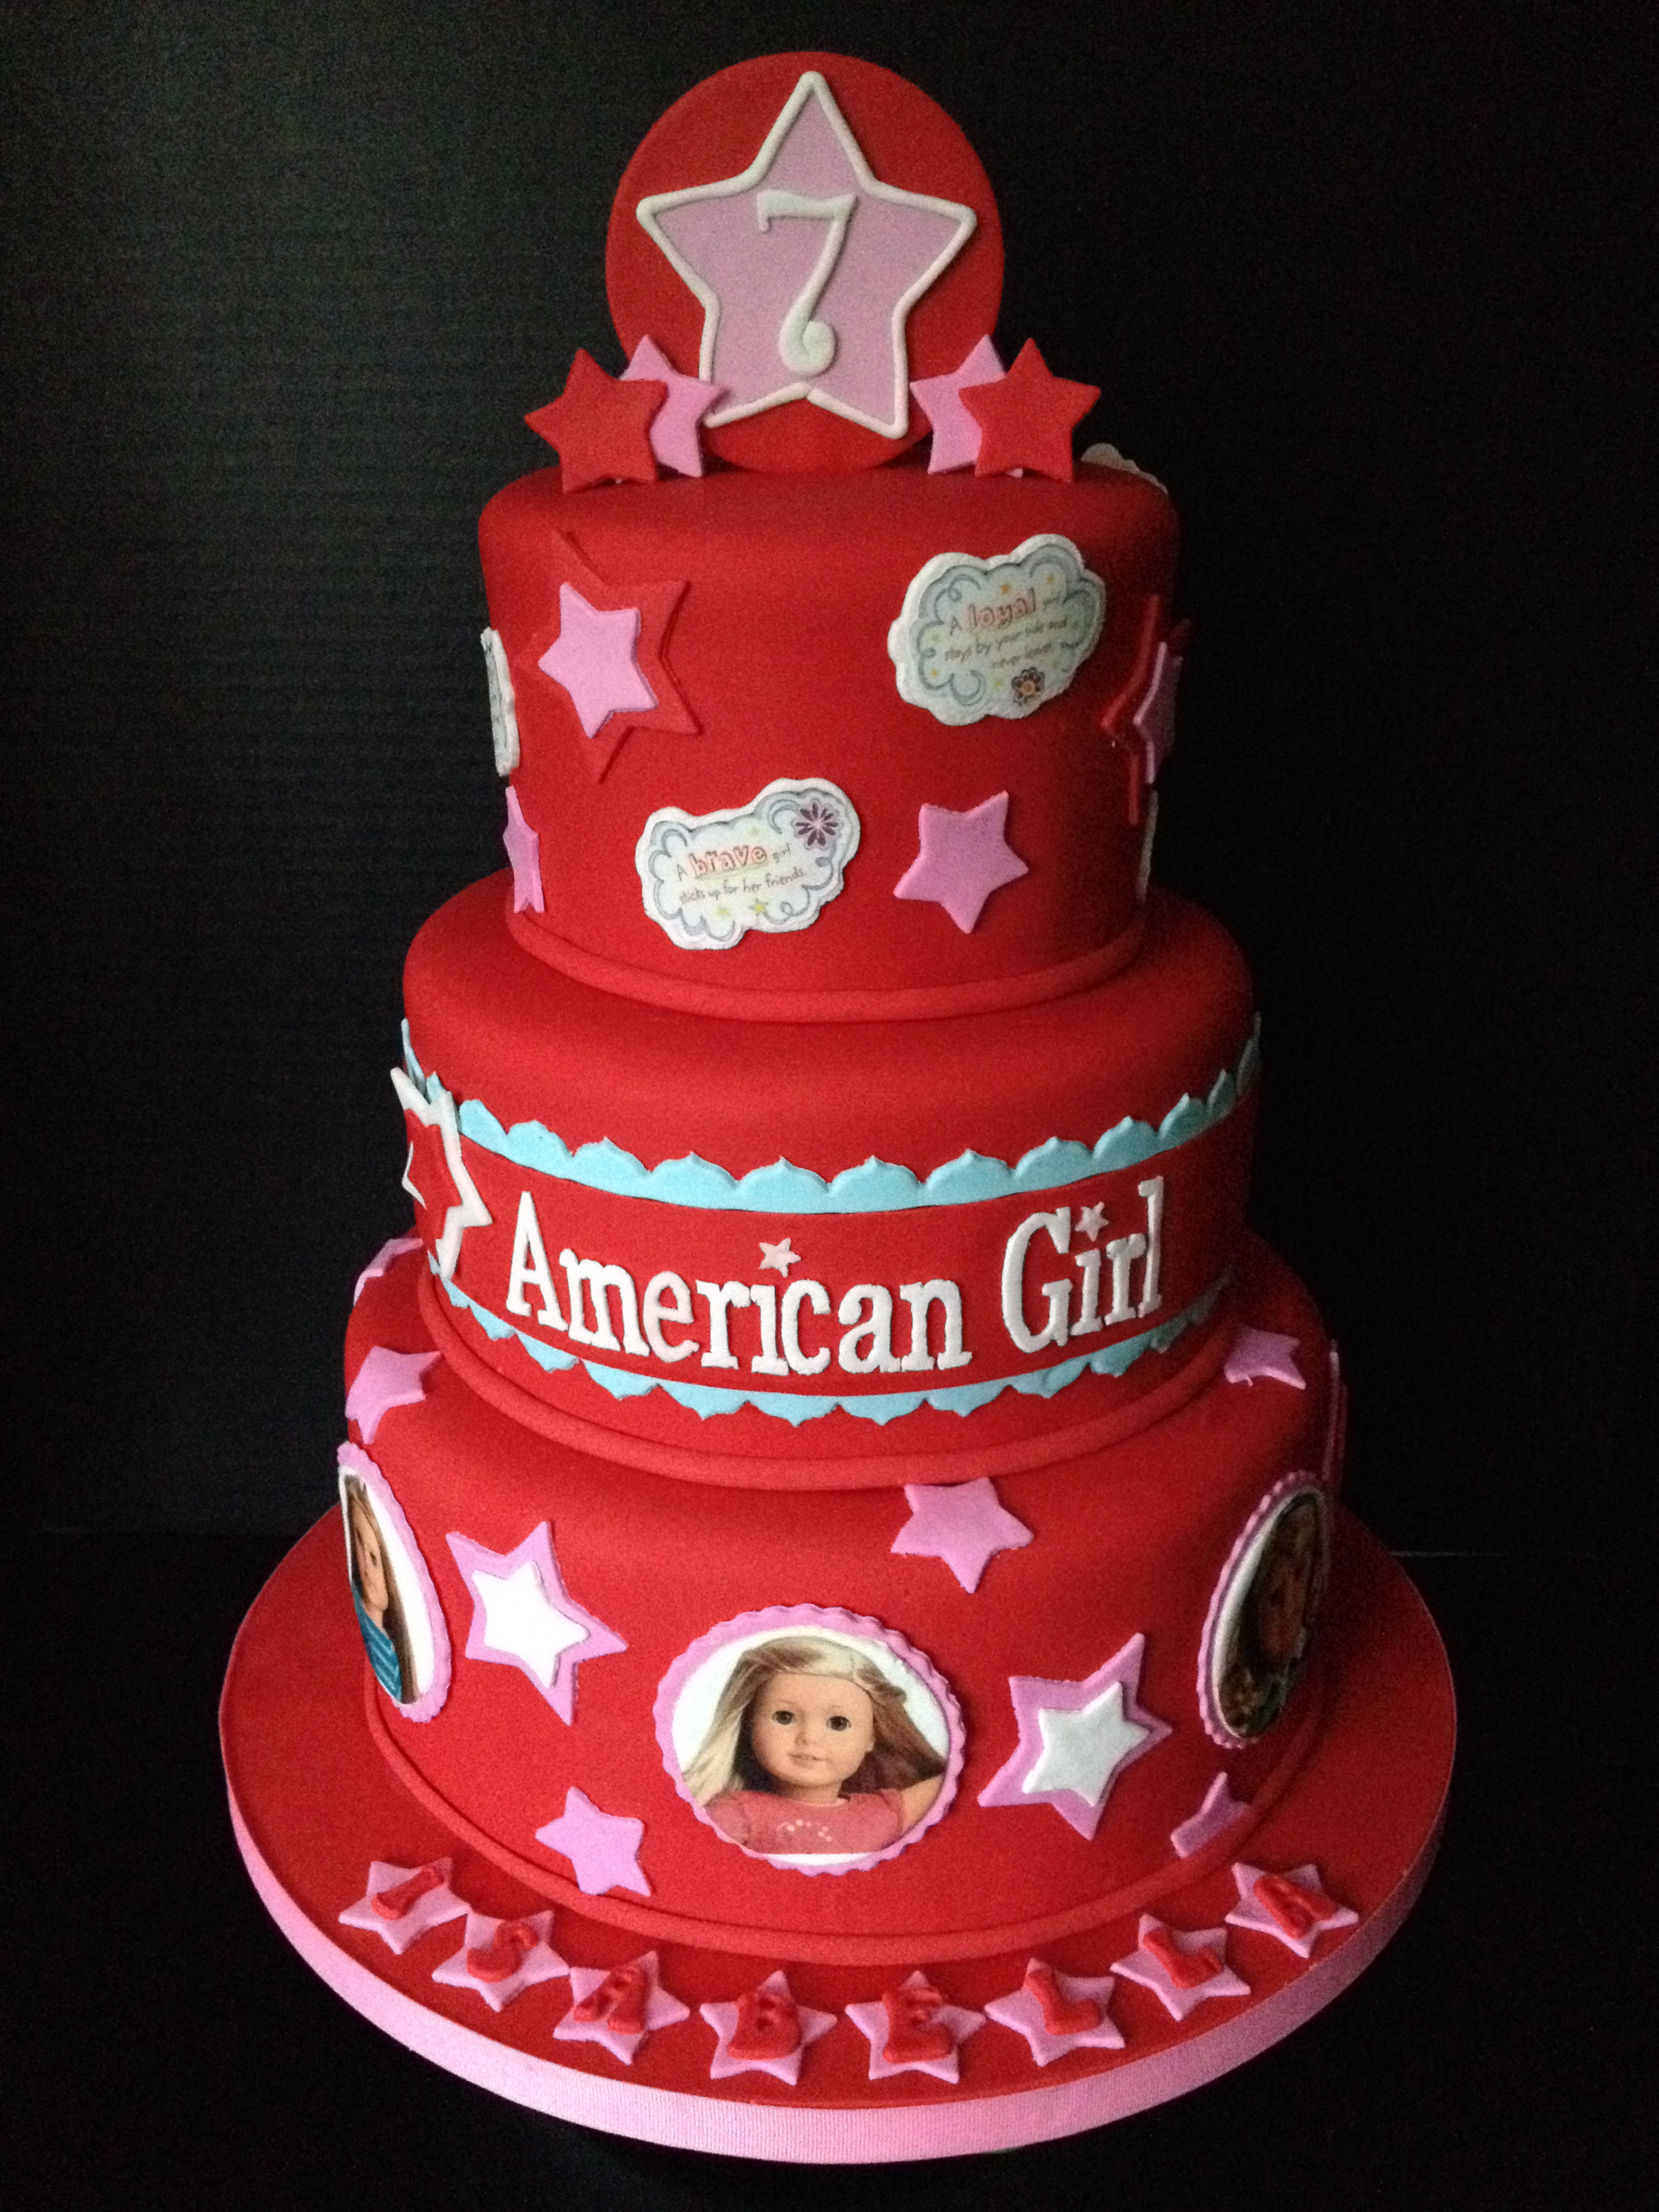 American Girl doll cake. All fondant with edible images..